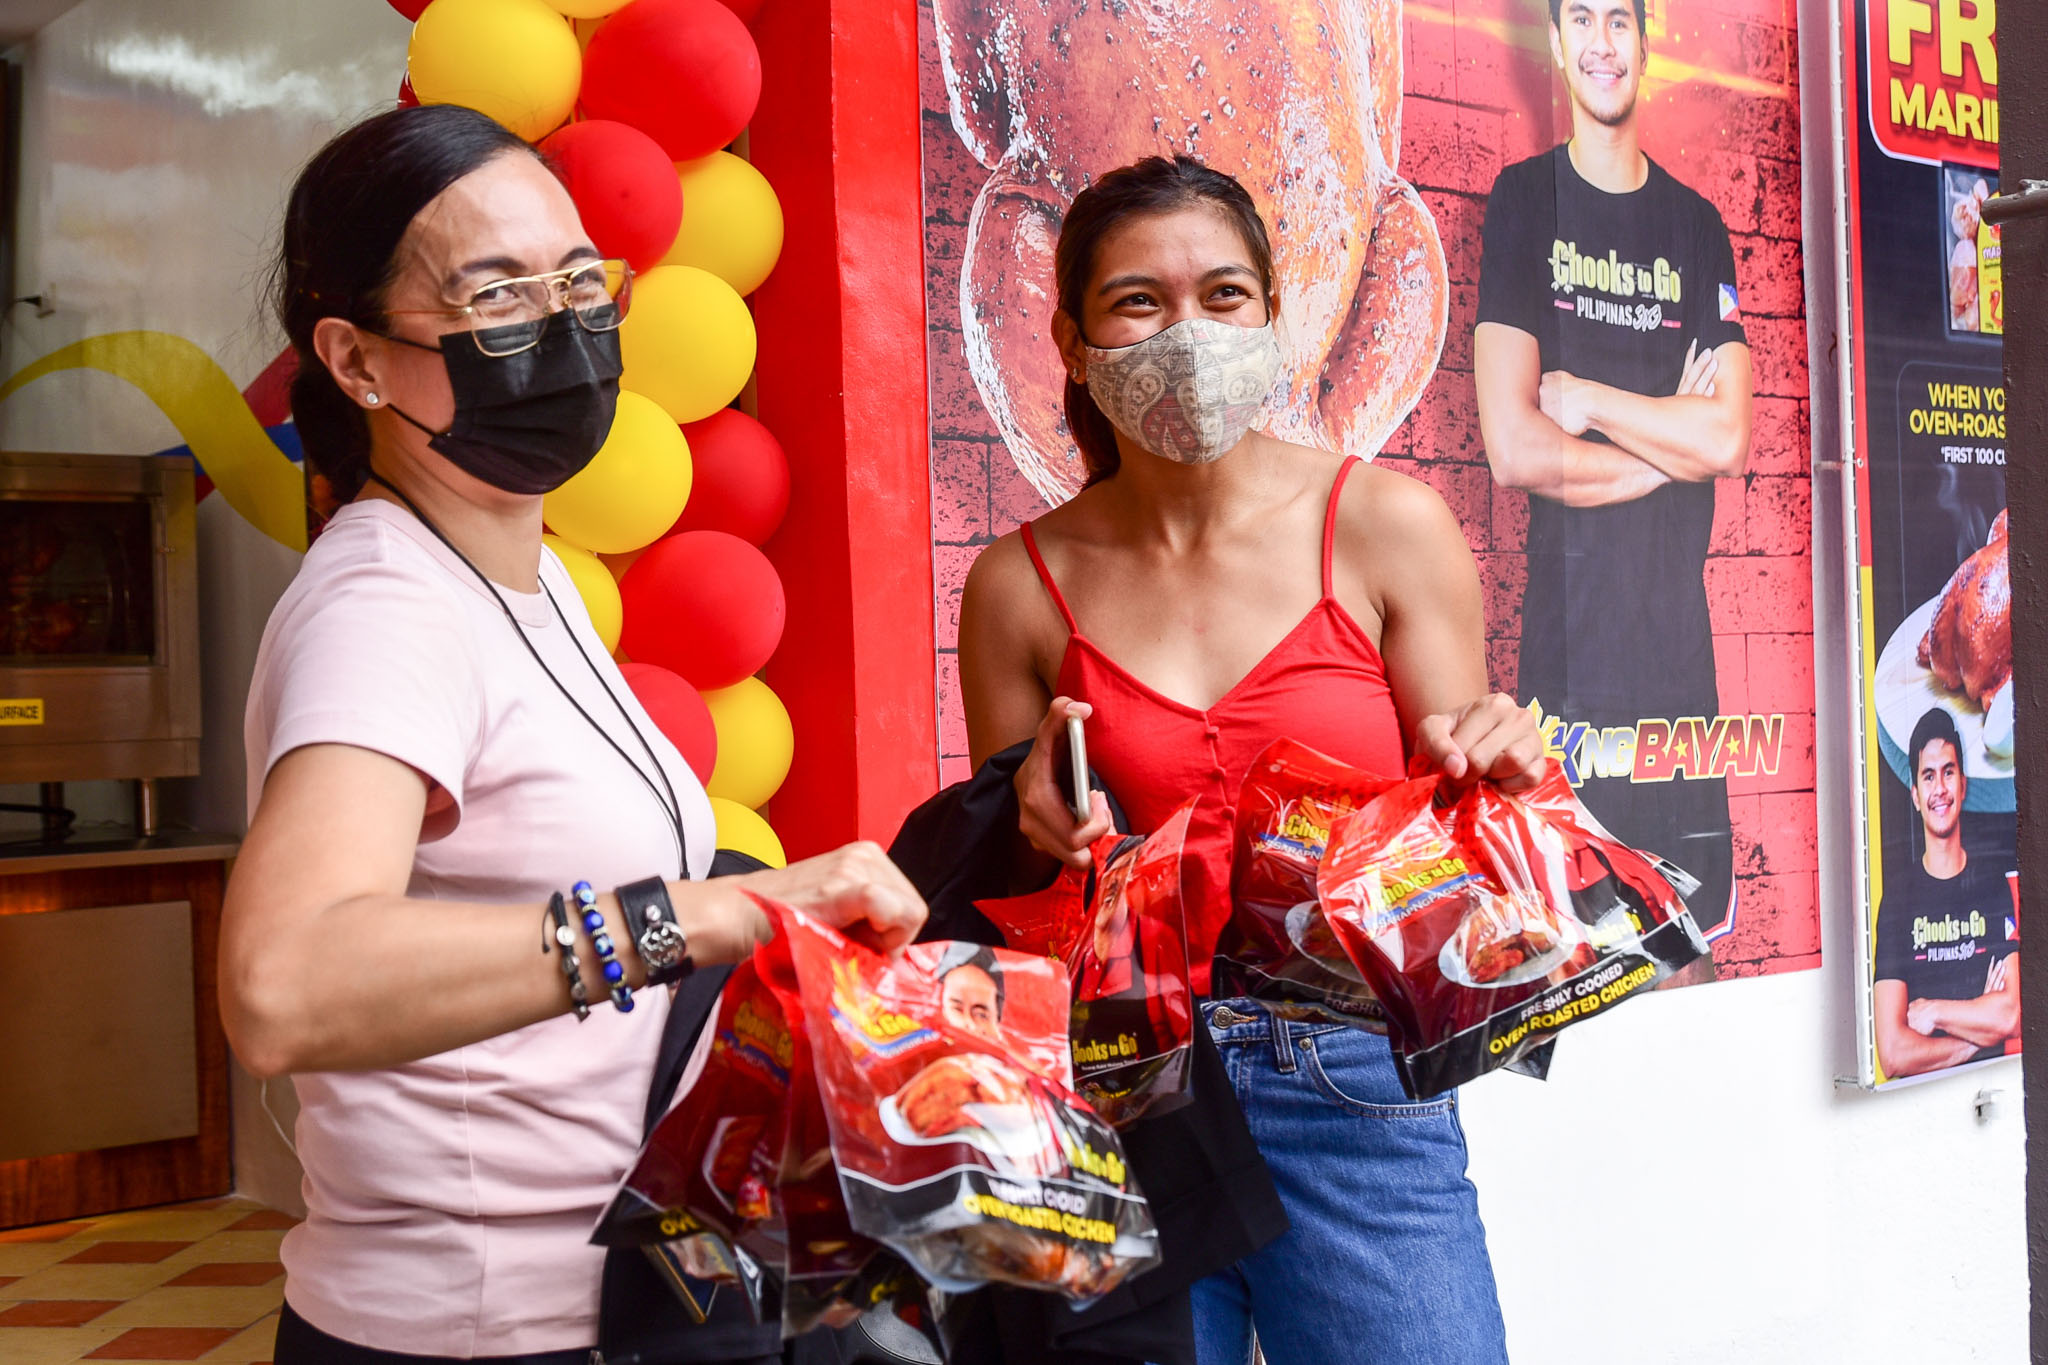 29-Oct-15-Kiefer-Store-Opening_6385 Alyssa Valdez opens Kiefer Ravena's Chooks-to-Go store Branded Content News  - philippine sports news